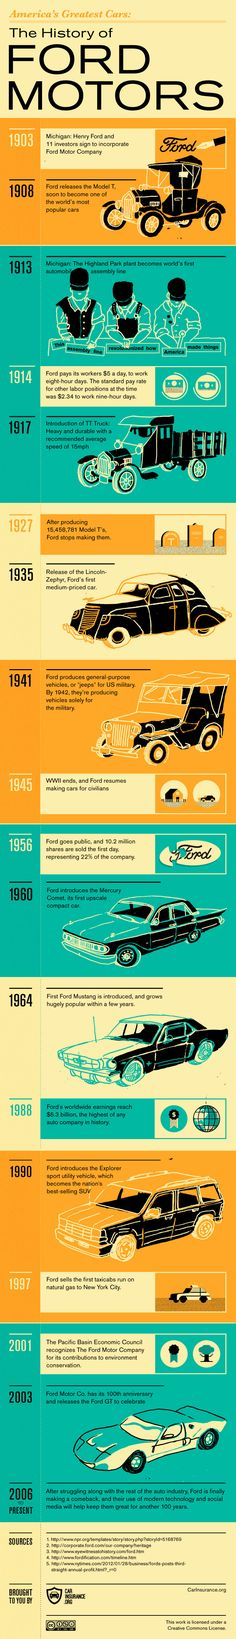 America's Greatest Cars: The History of Ford Motors